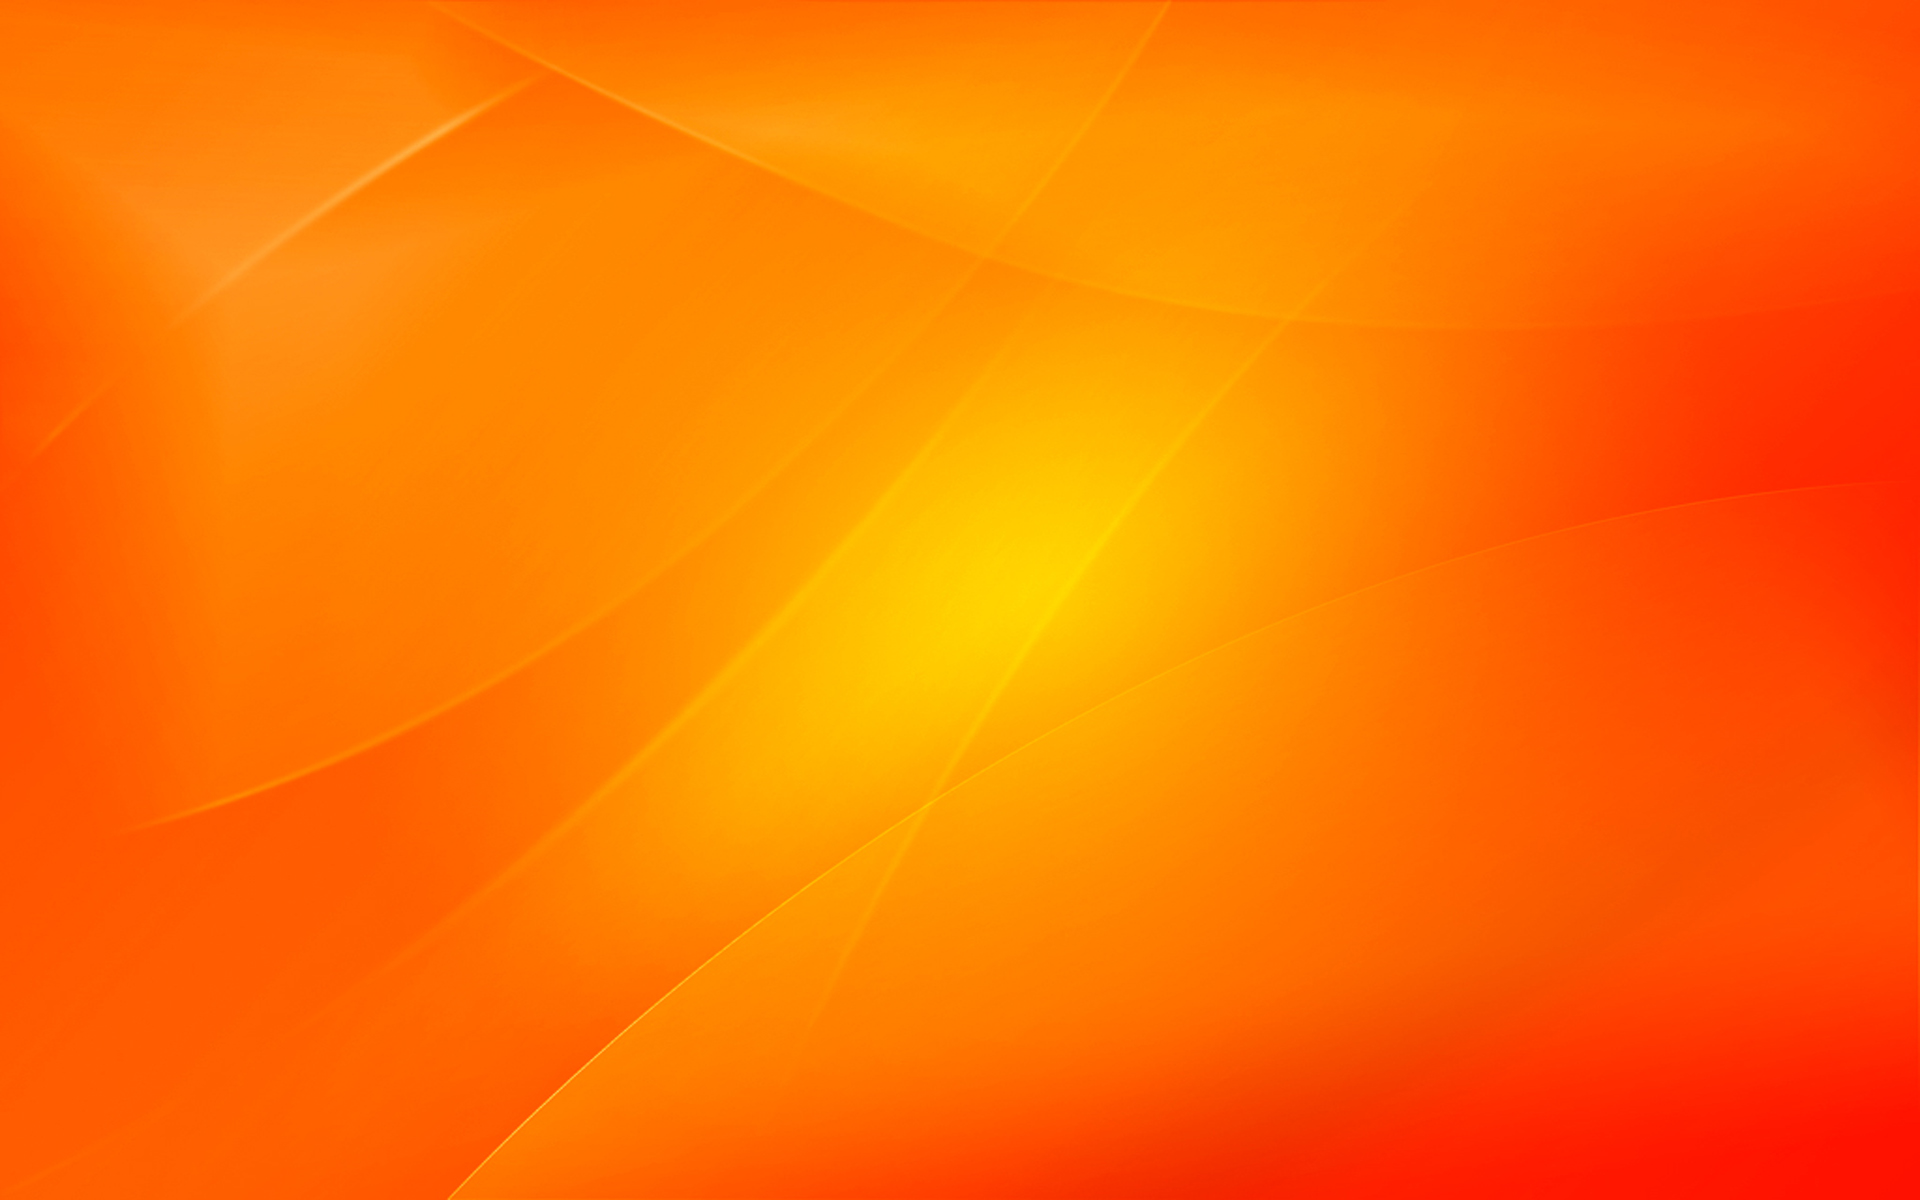 Orange Backgrounds - WallpaperSafari